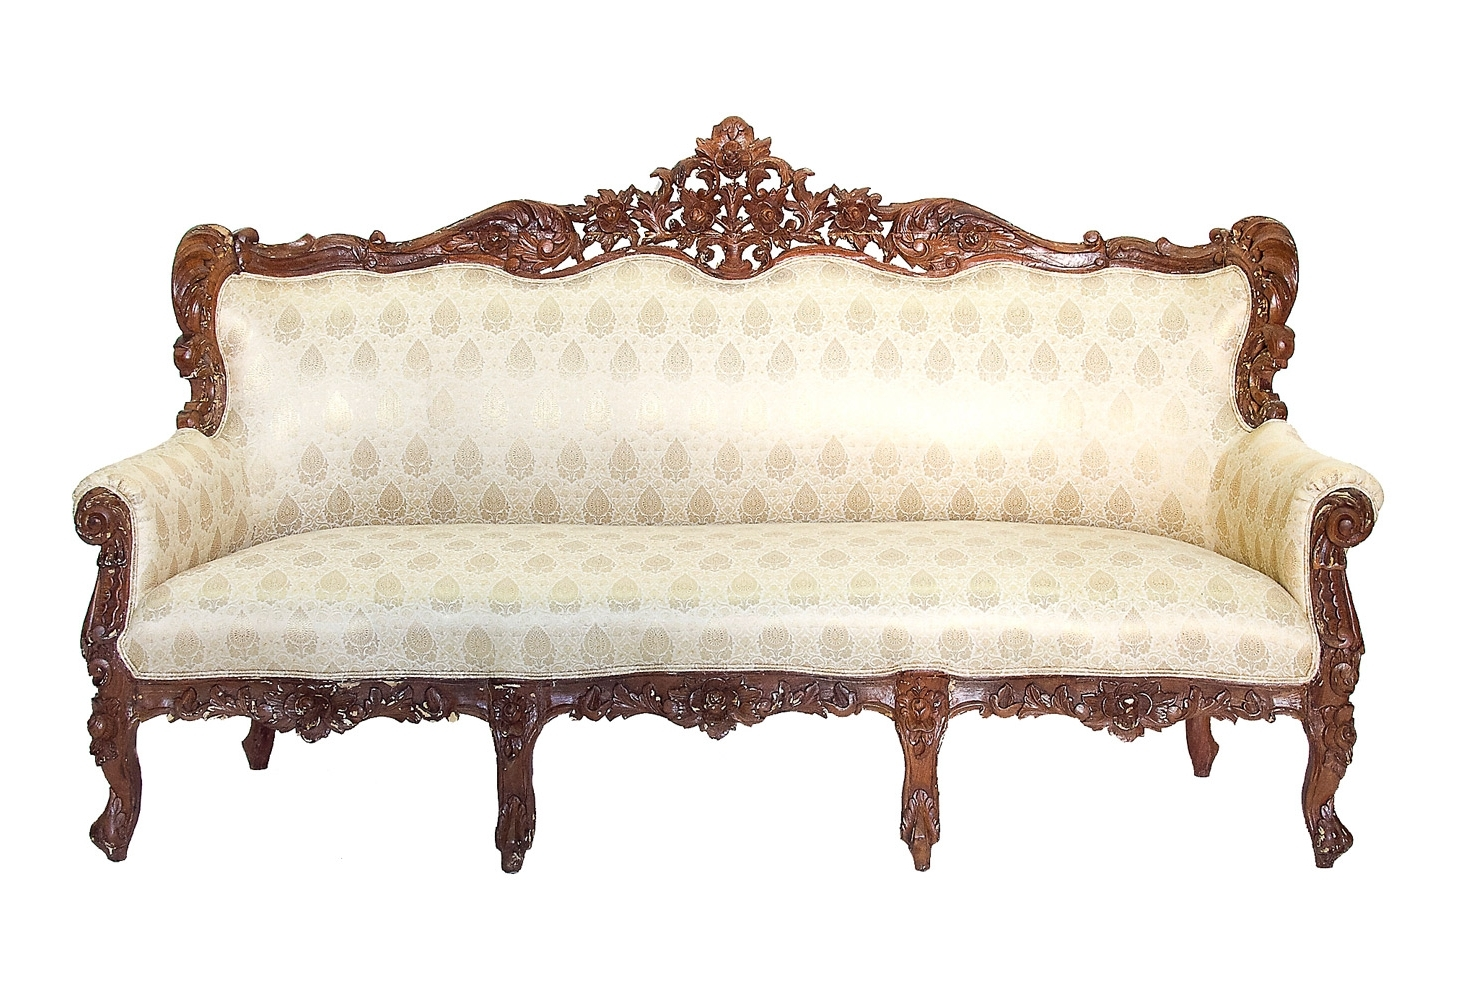 Antique Victorian Sofa (View 4 of 20)